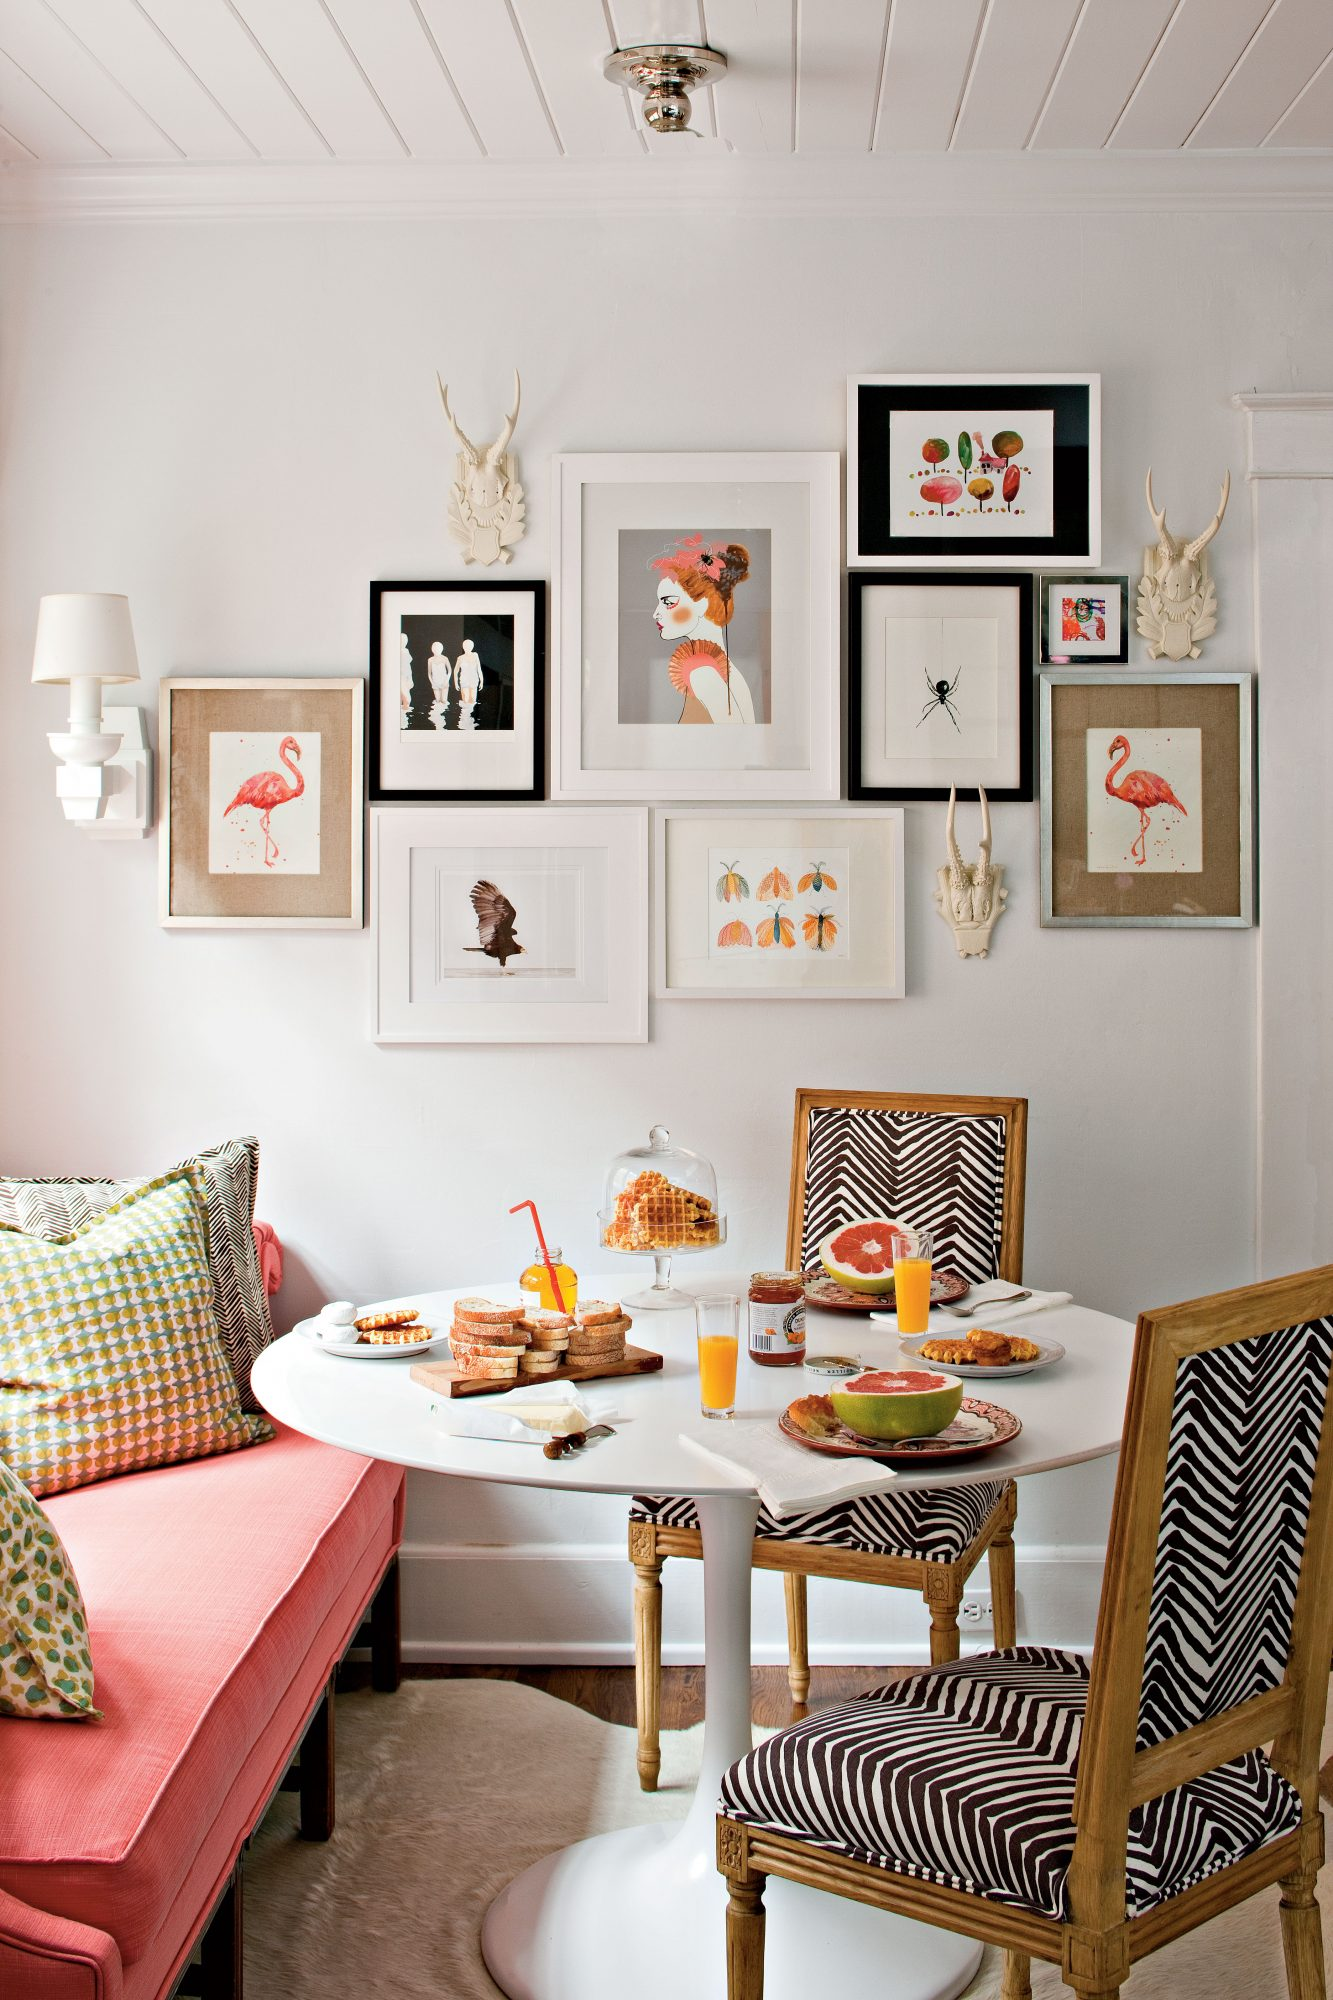 Budget Decorating Ideas: Create a Gallery Wall with Art - Southern ...